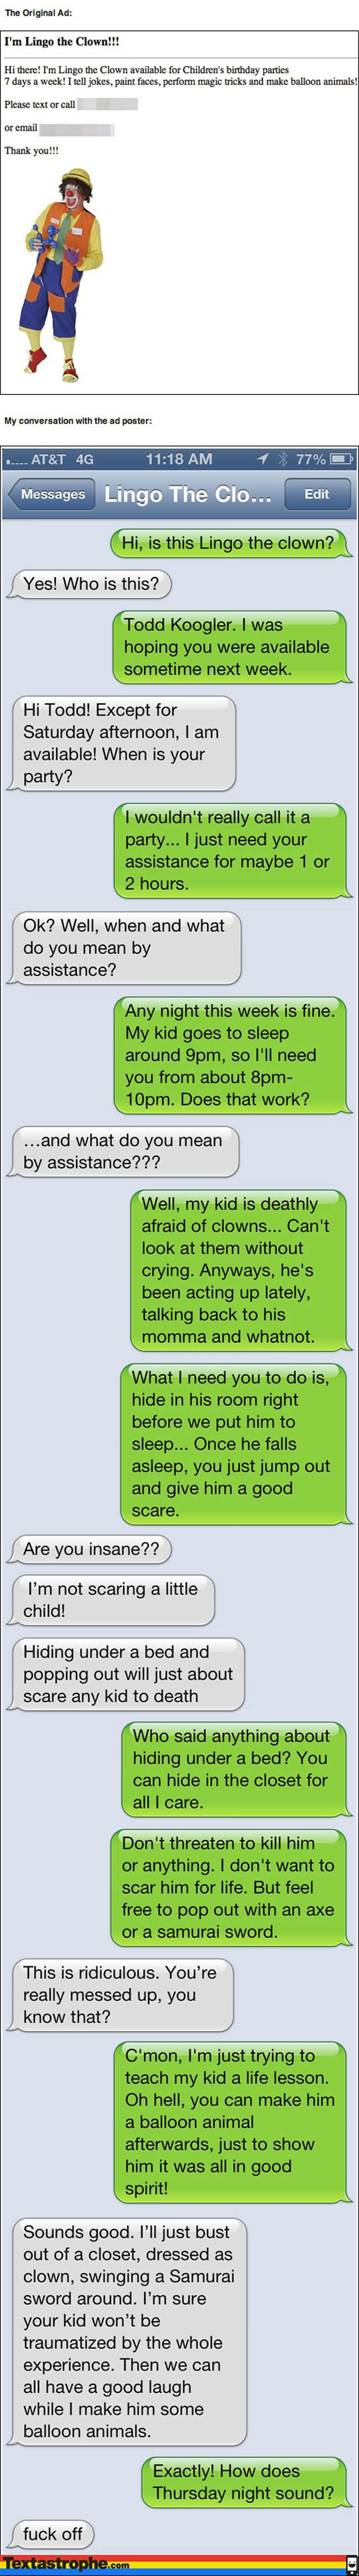 The Clown Prank